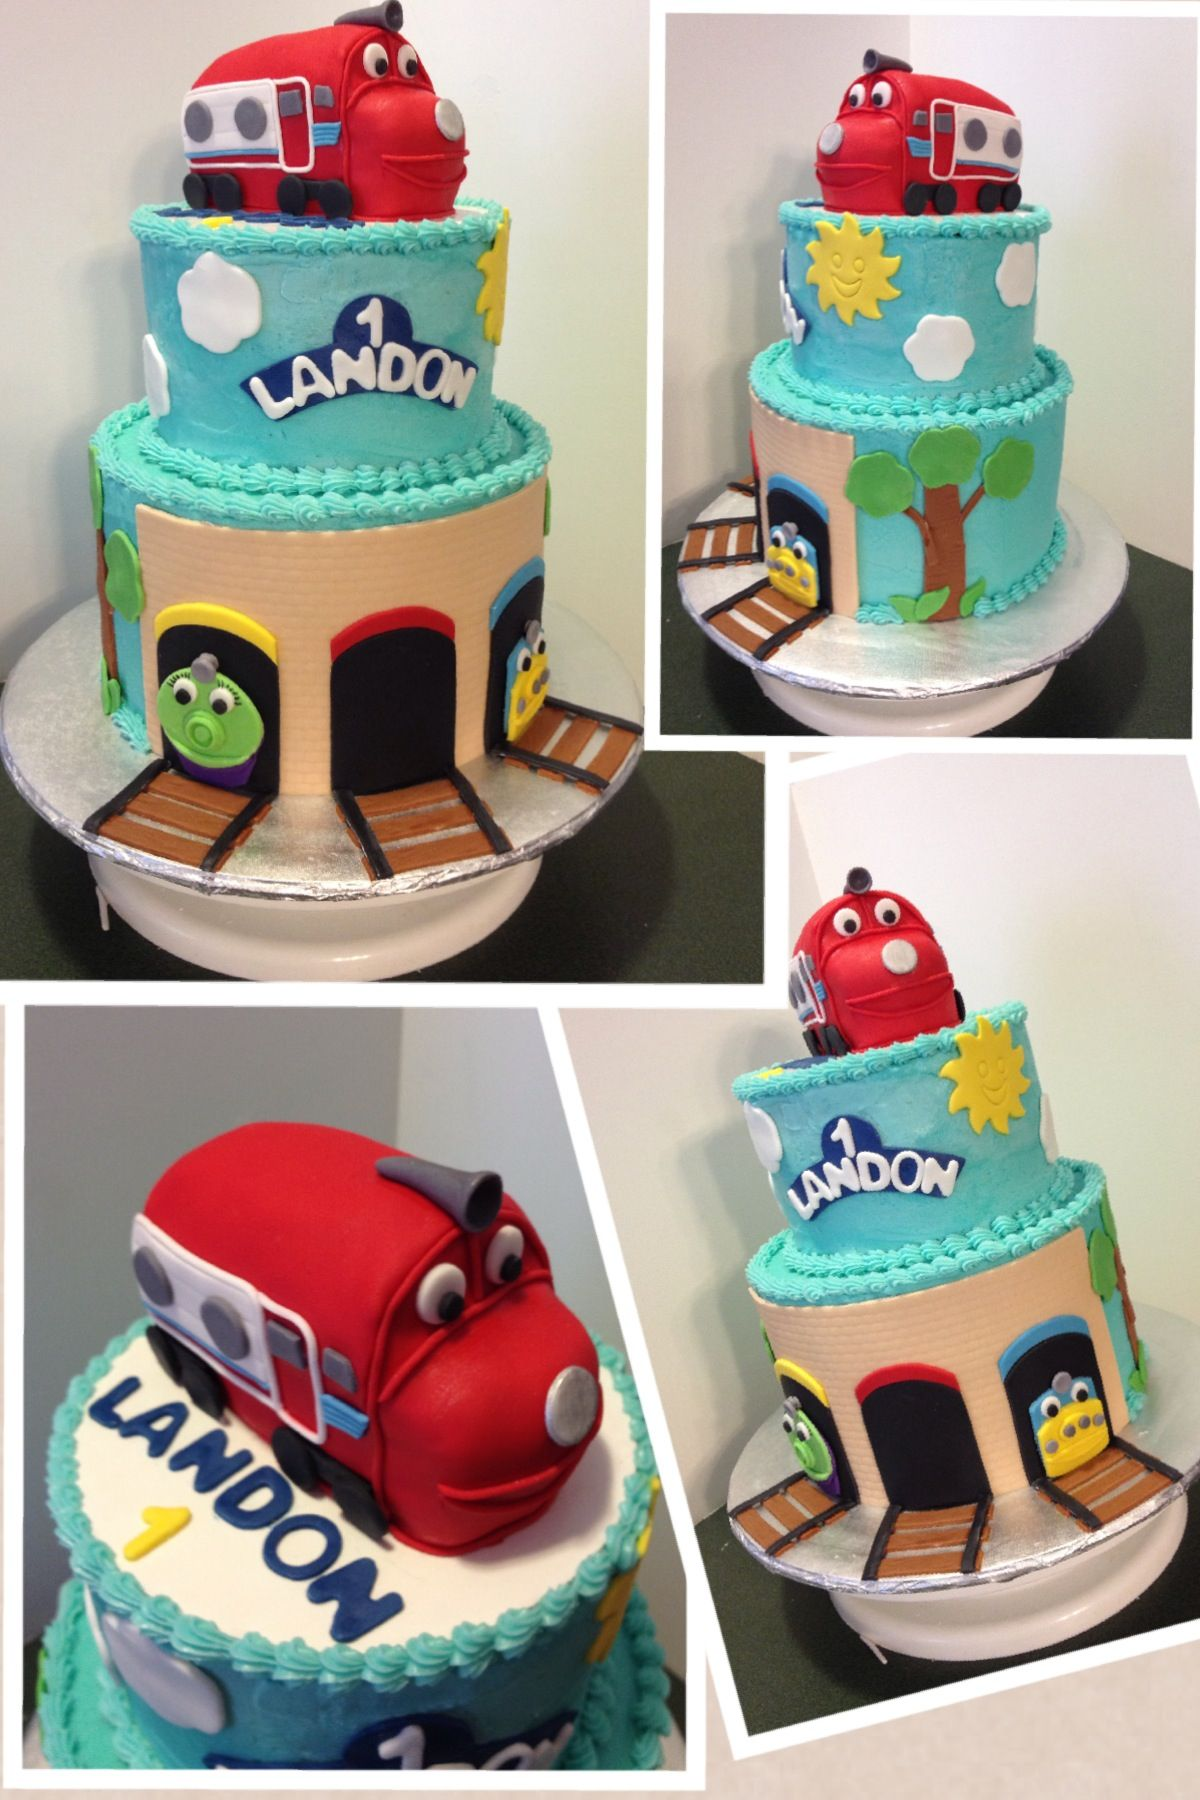 Chuggington 1st Birthday cake that I made for my nephew The small